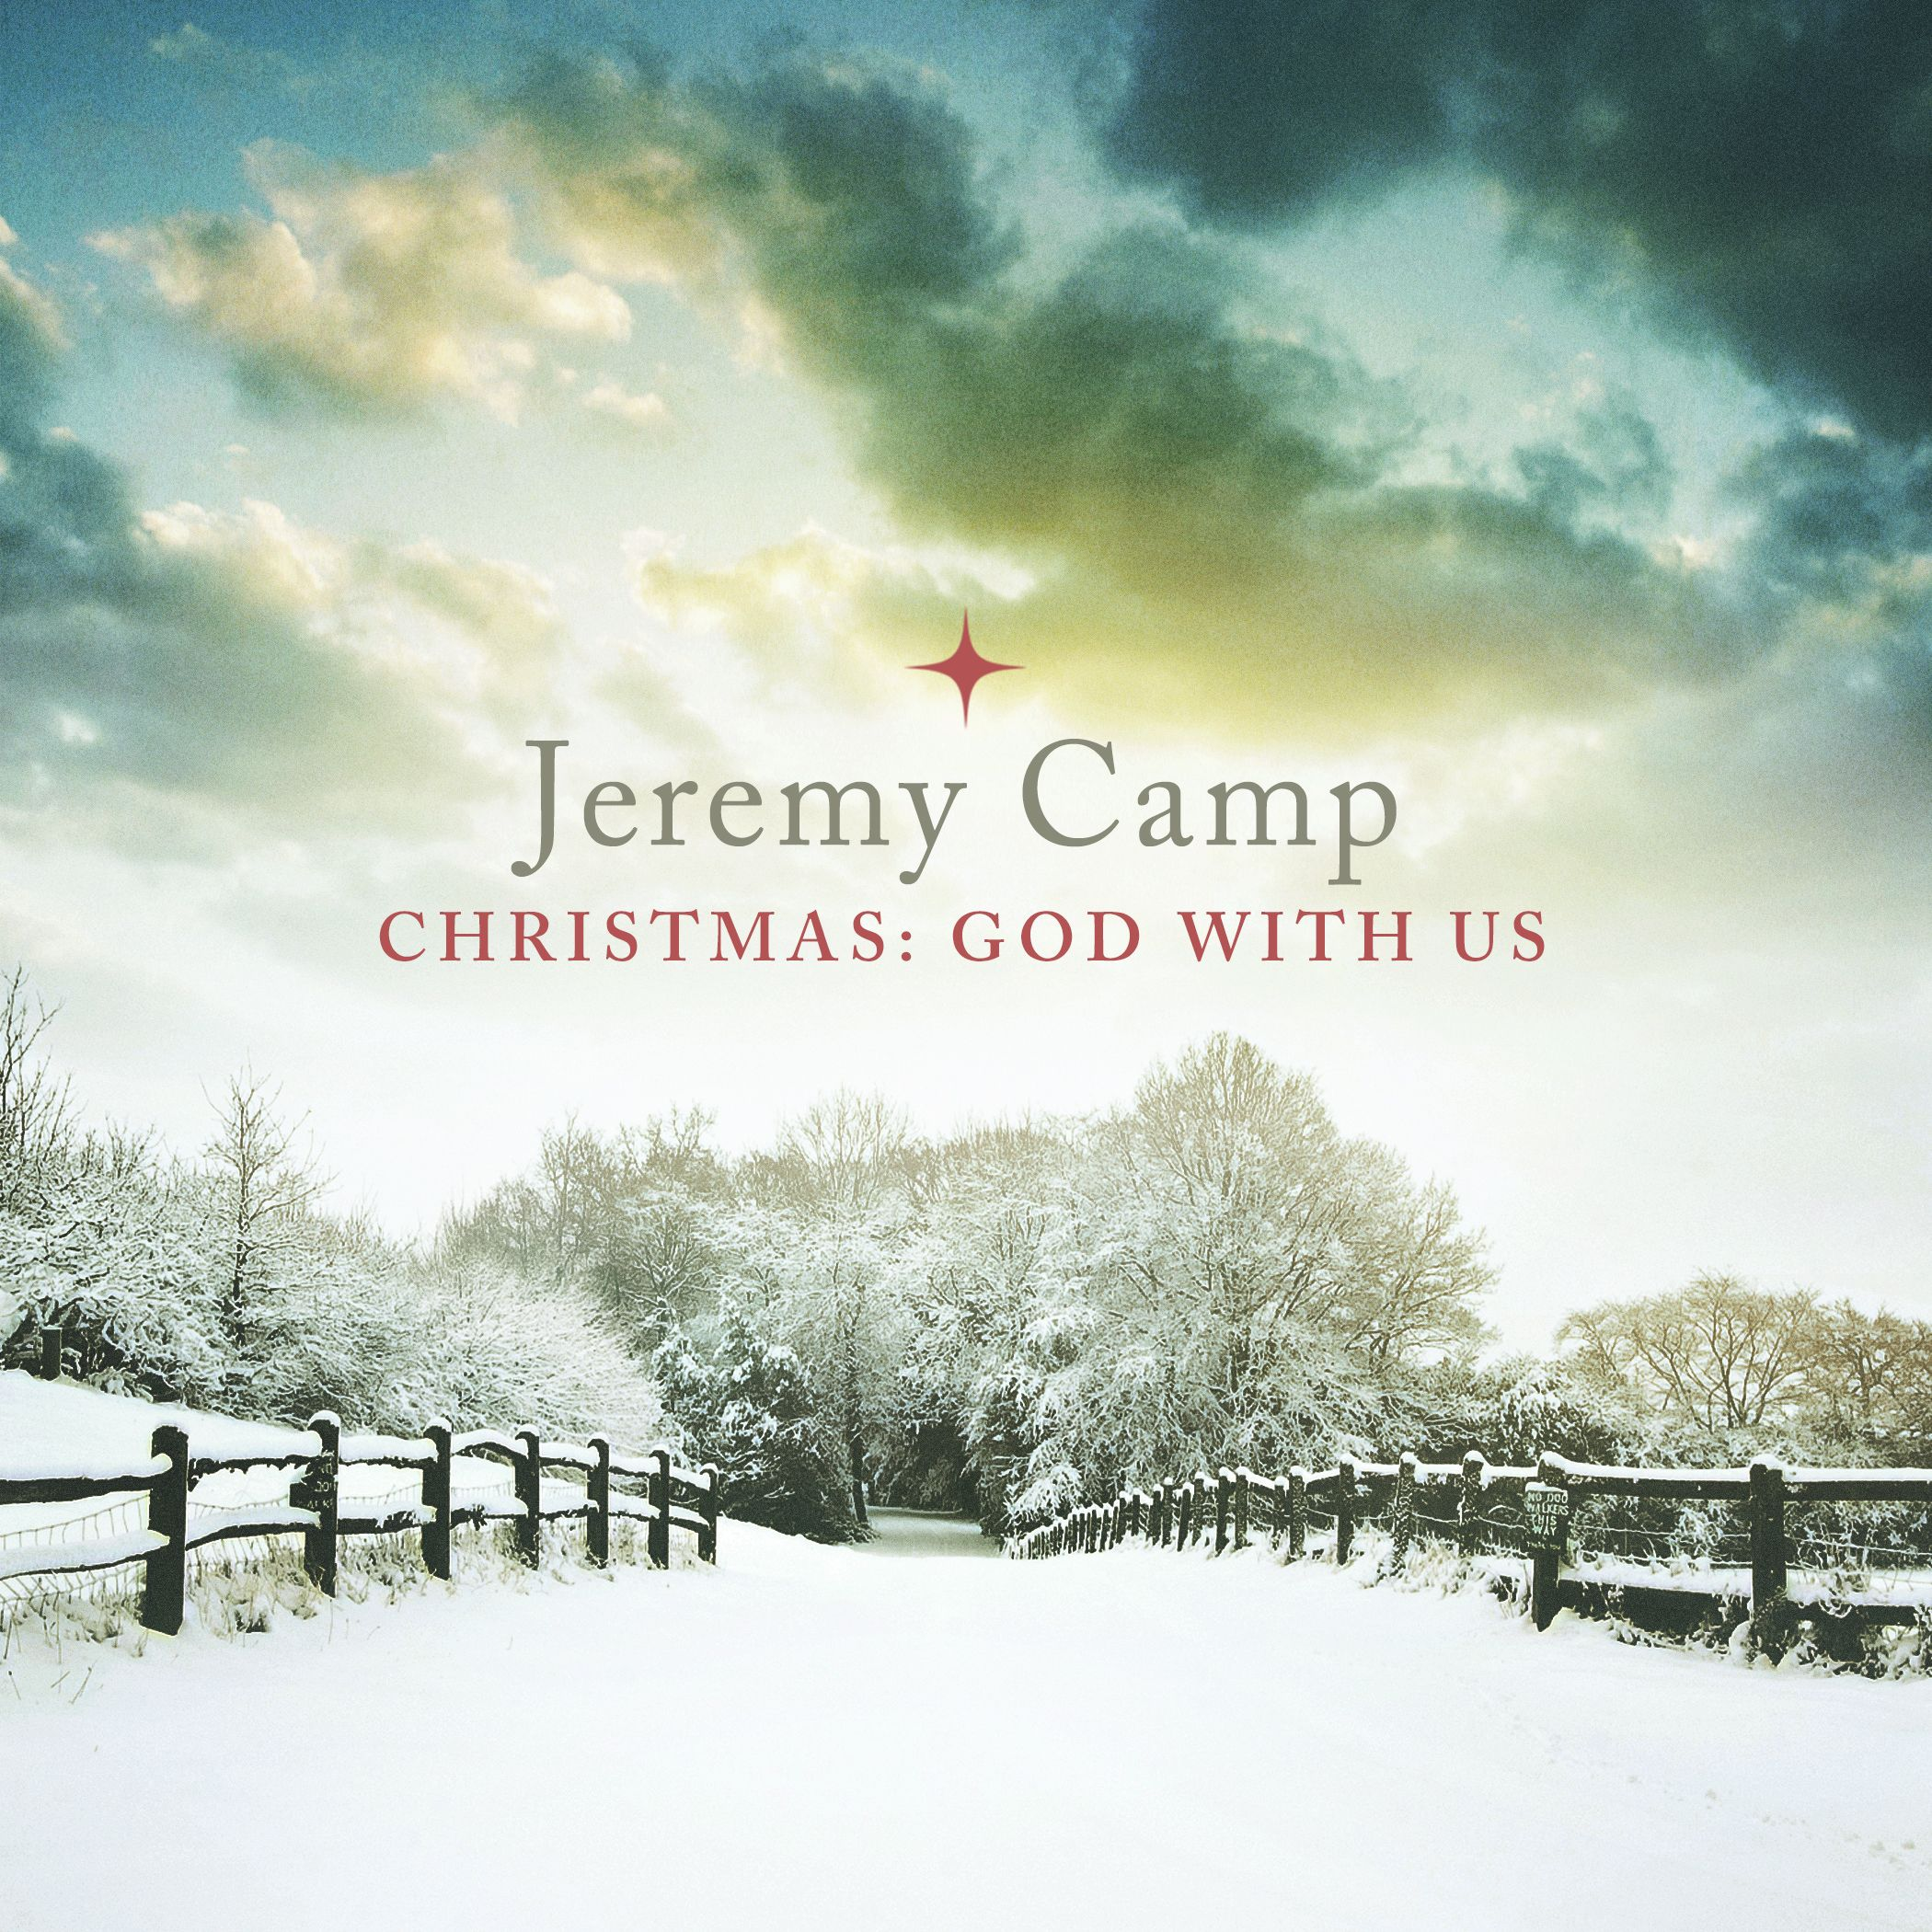 Listen to the Music Christians Love at Christmastime | Christian ...